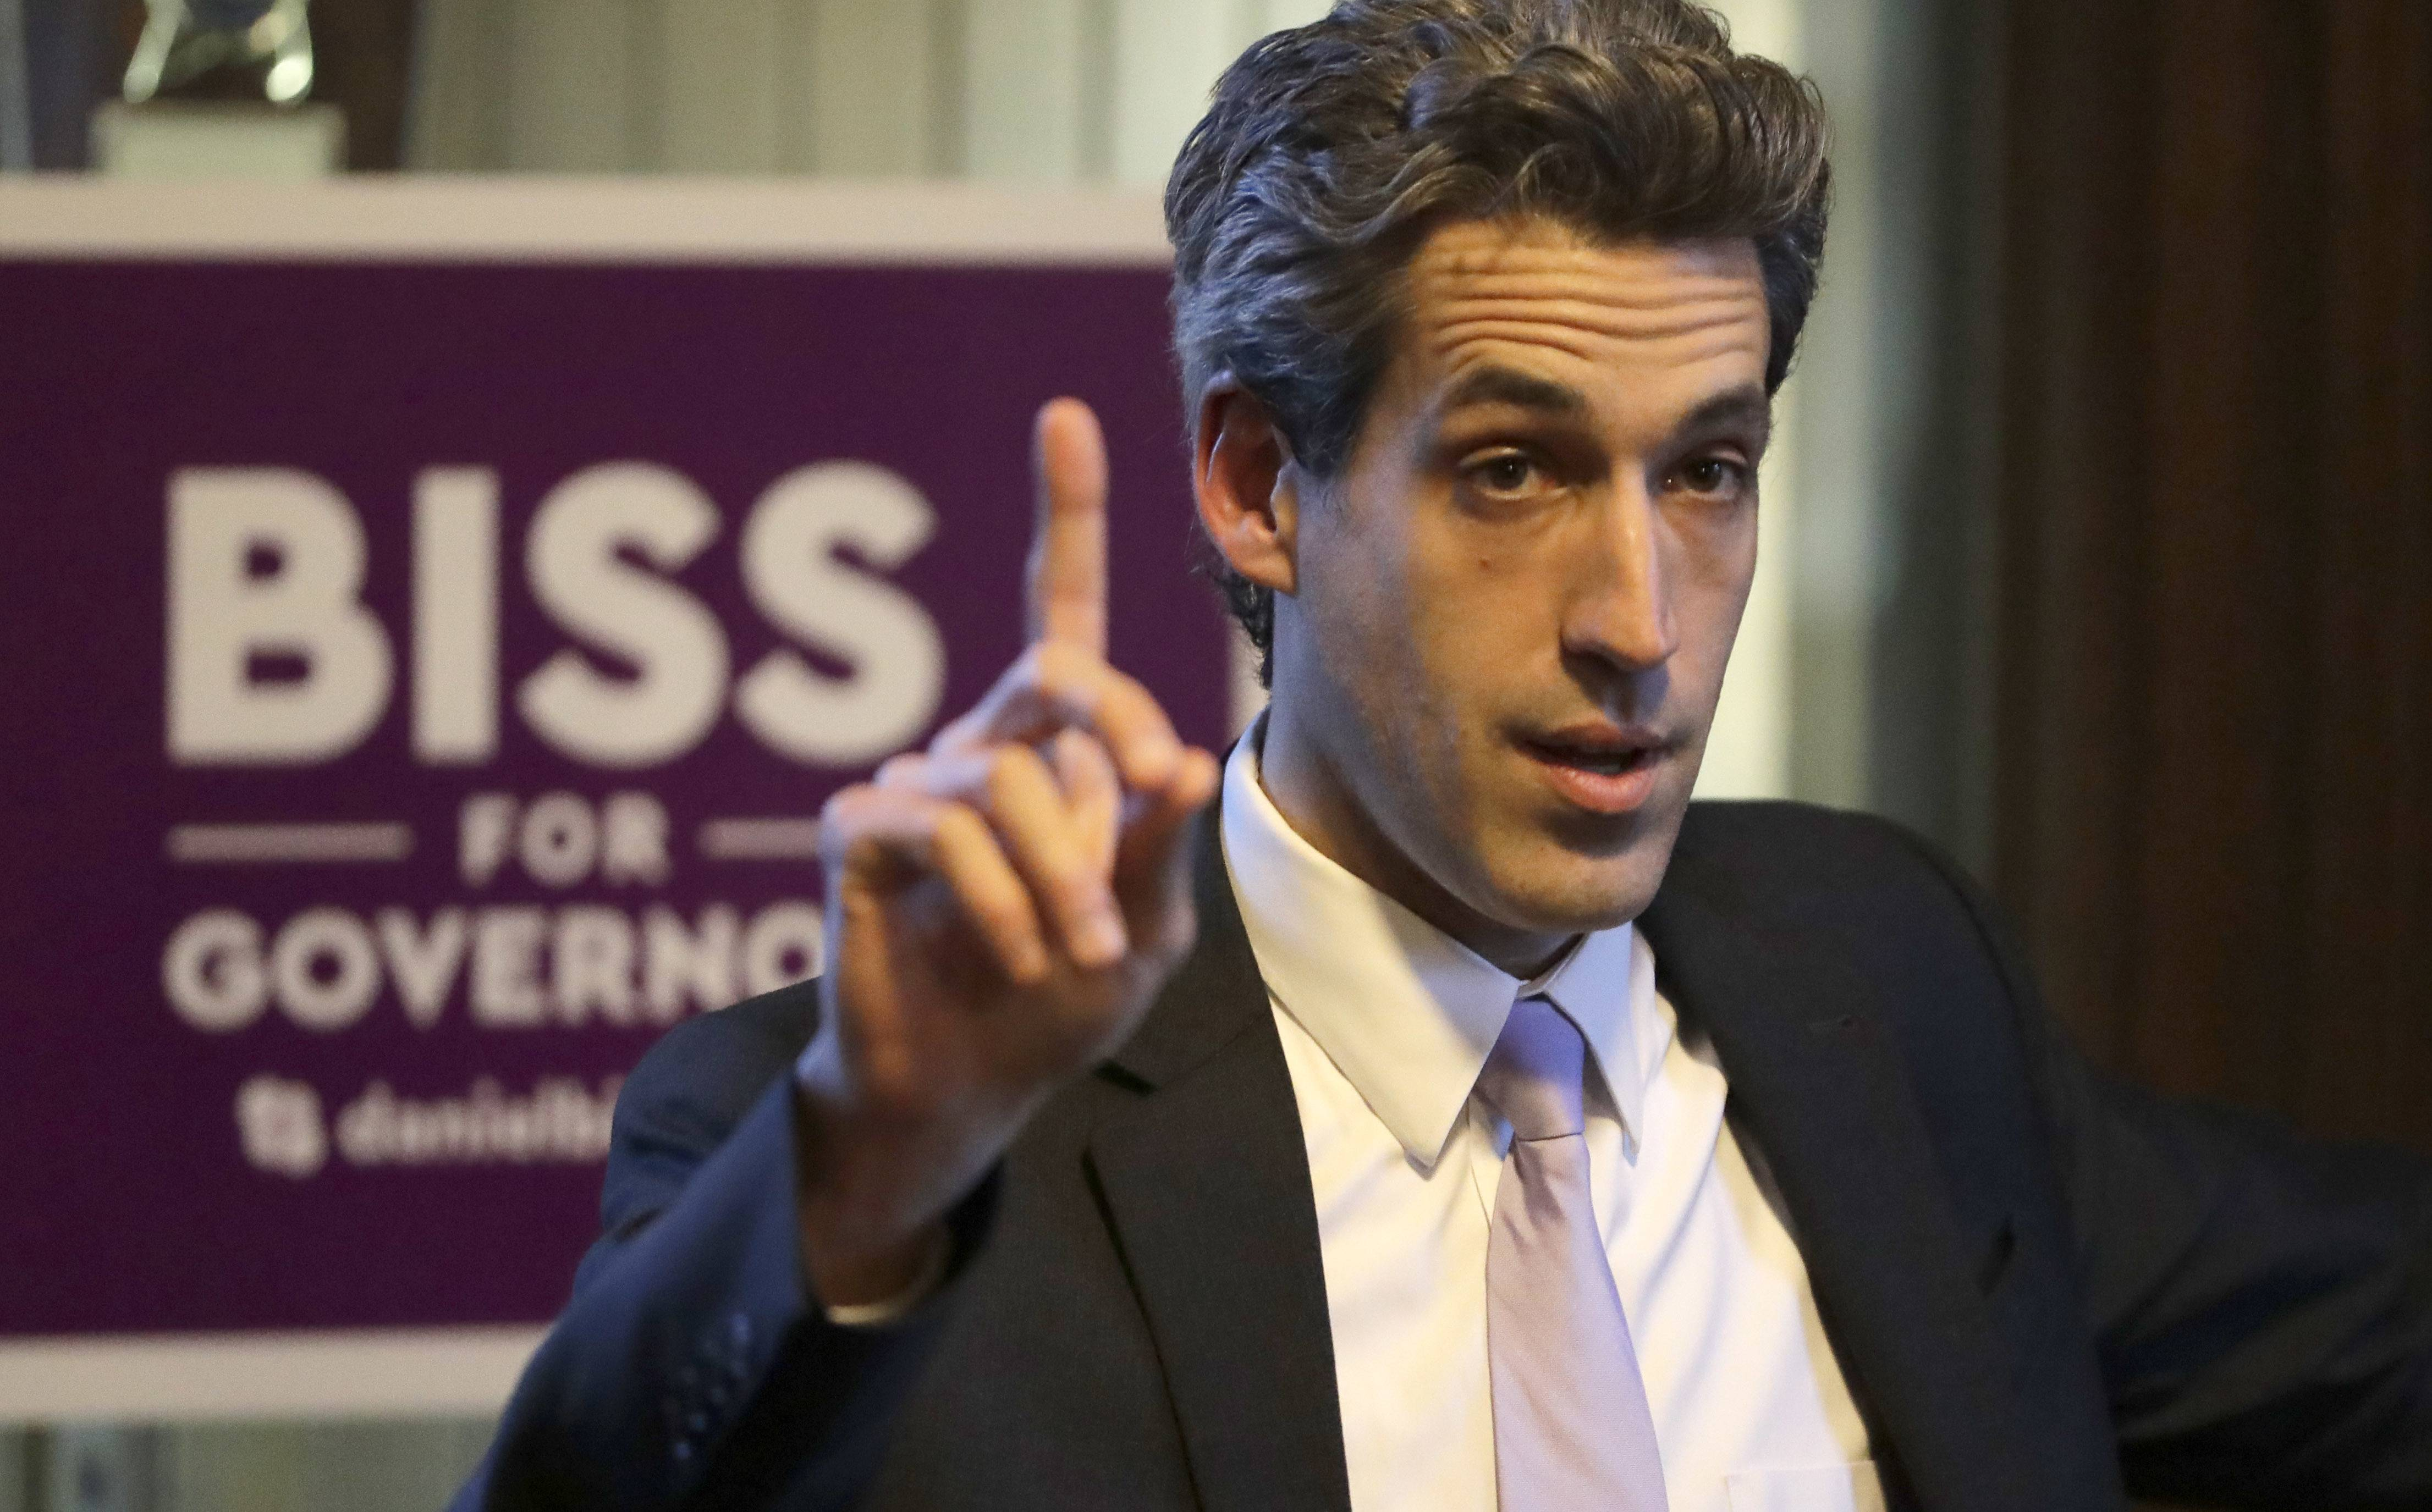 Democratic gubernatorial candidate Illinois Sen. Daniel Biss of Evanston talks to students during a campaign stop on the University of Chicago campus in Chicago. The former math professor who reported income of less than $35,000 last year is campaigning as a middle-class candidate in an Illinois governor's race that includes a couple millionaires and a billionaire. Biss seems to be gaining support for his progressive campaign.